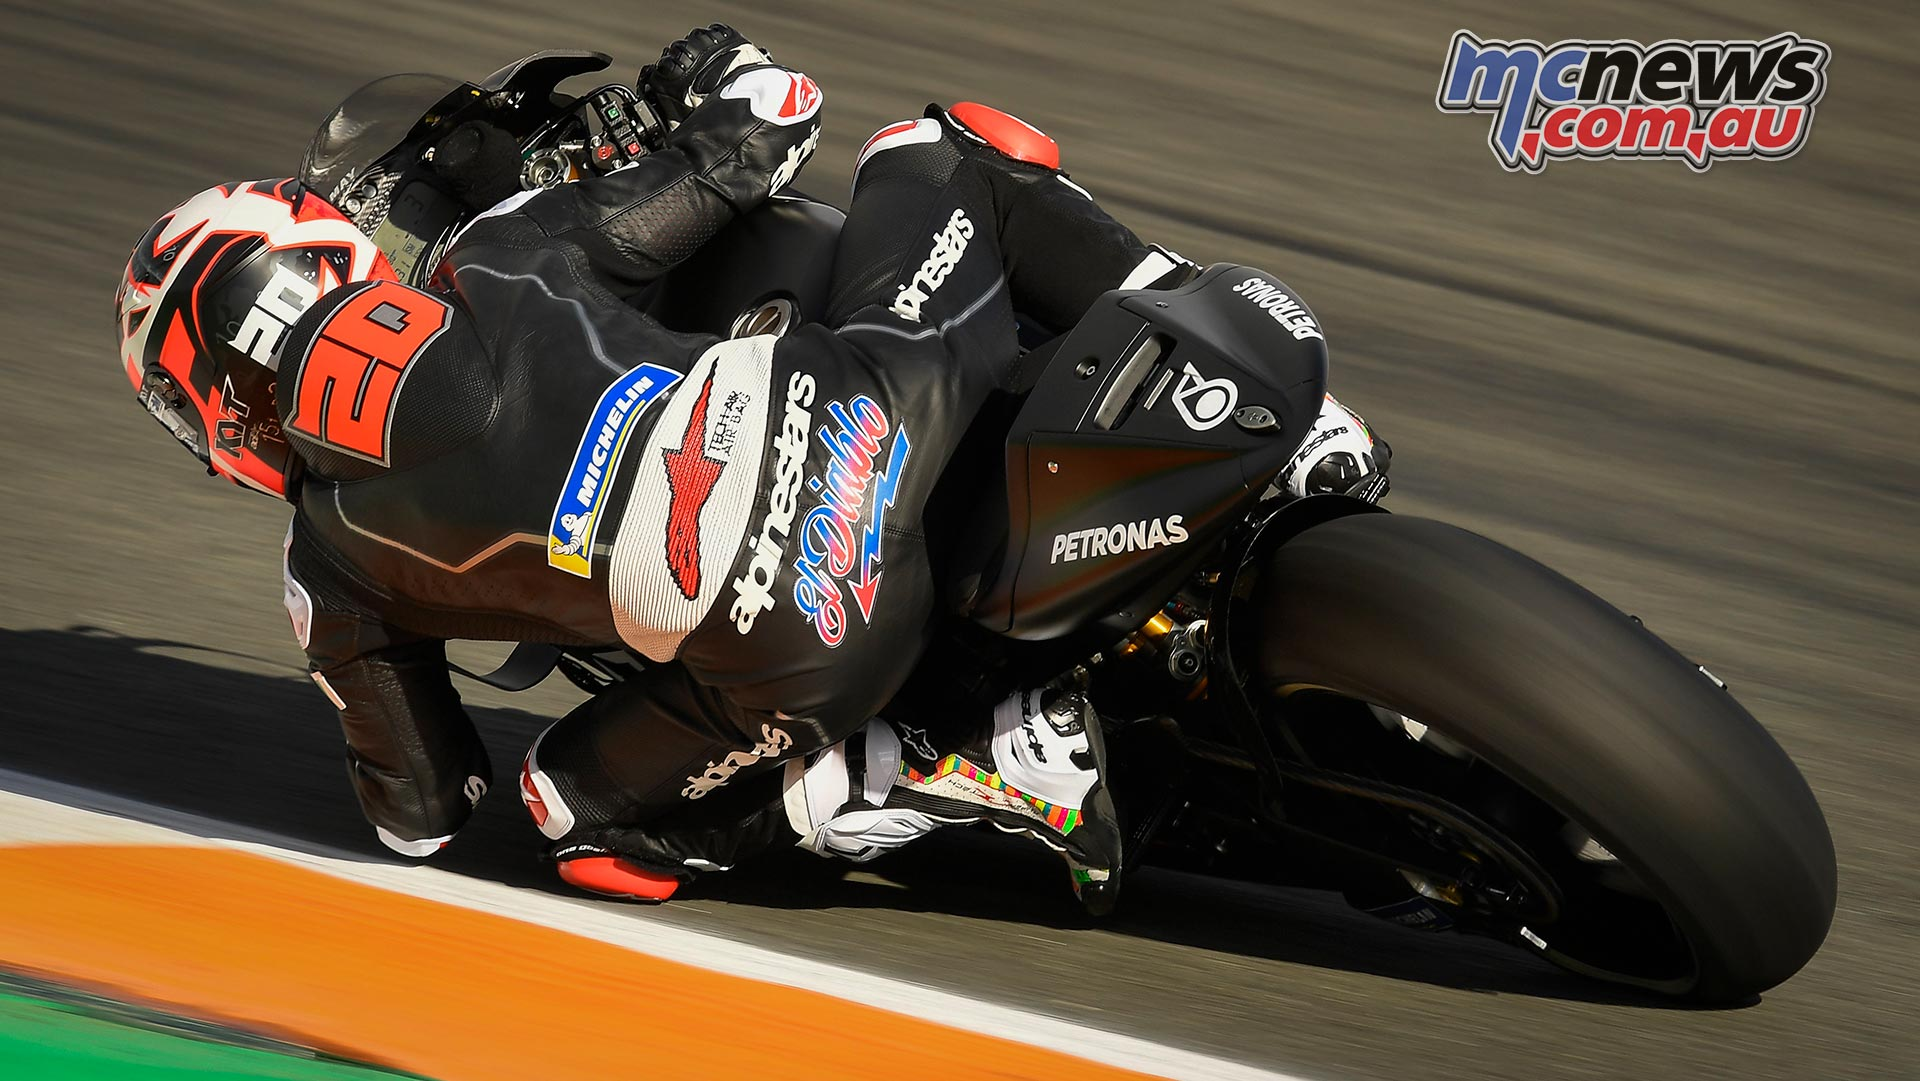 Fabio Quartararo Talks About The Step Up To Motogp Motorcycle News Sport And Reviews